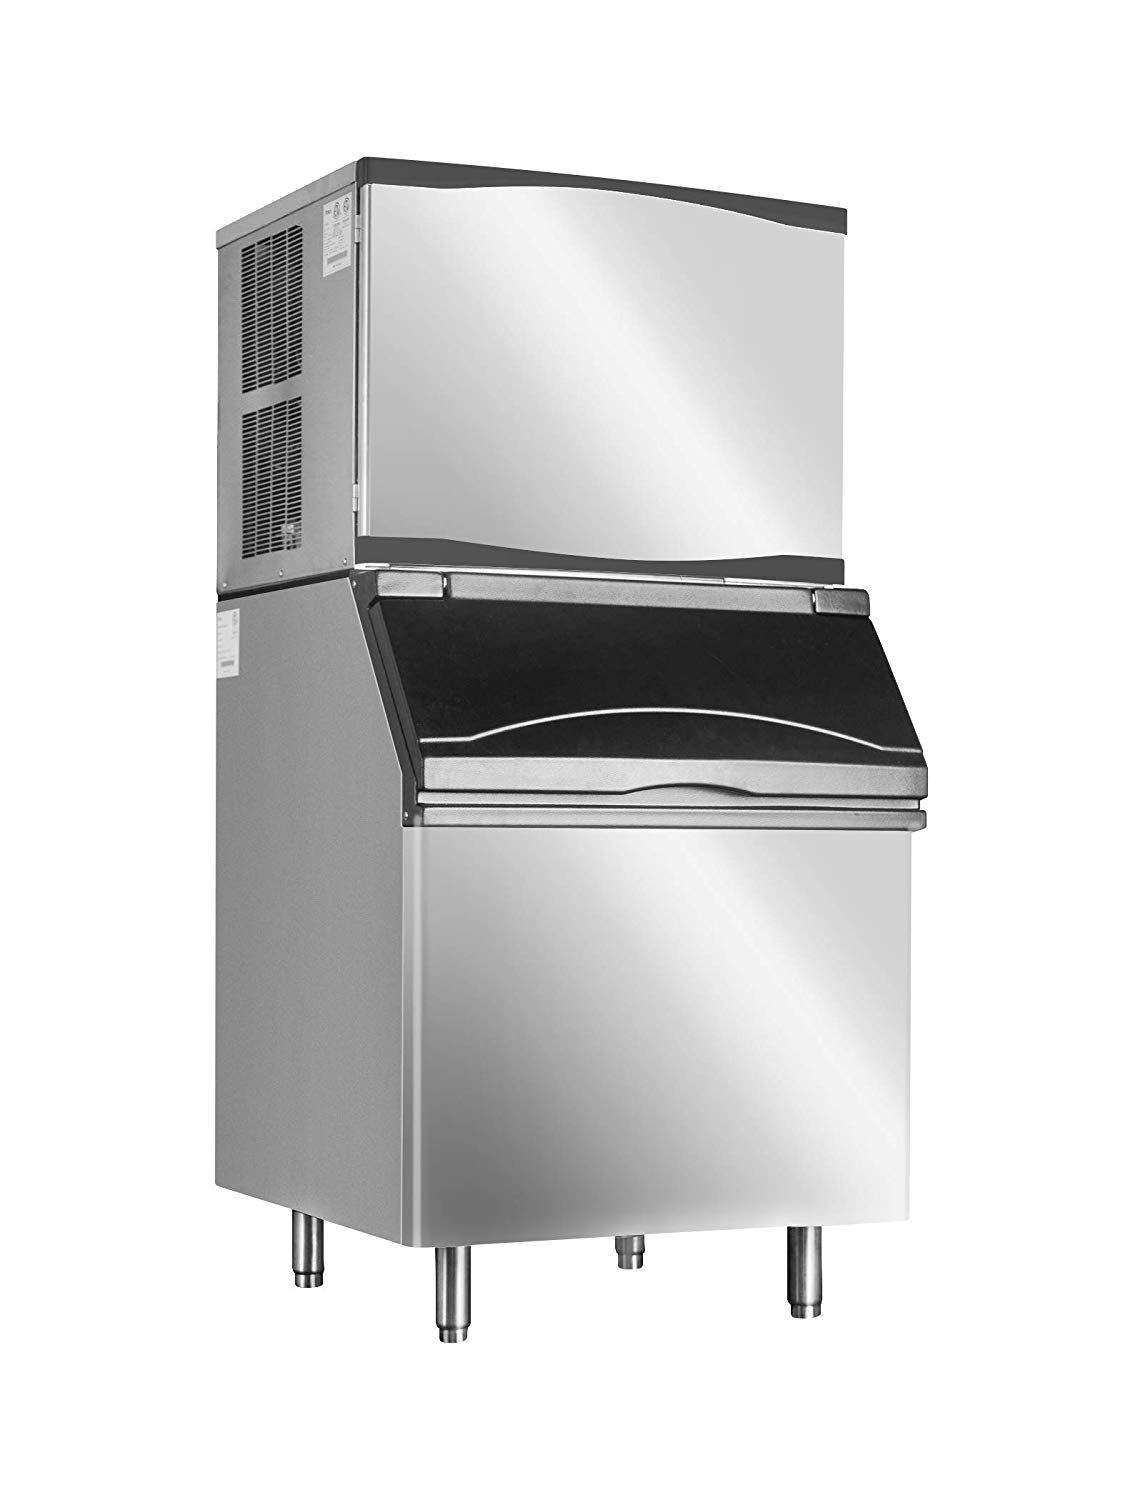 Atosa Yr800 Ap 261 Commercial Ice Maker 800 Lbs